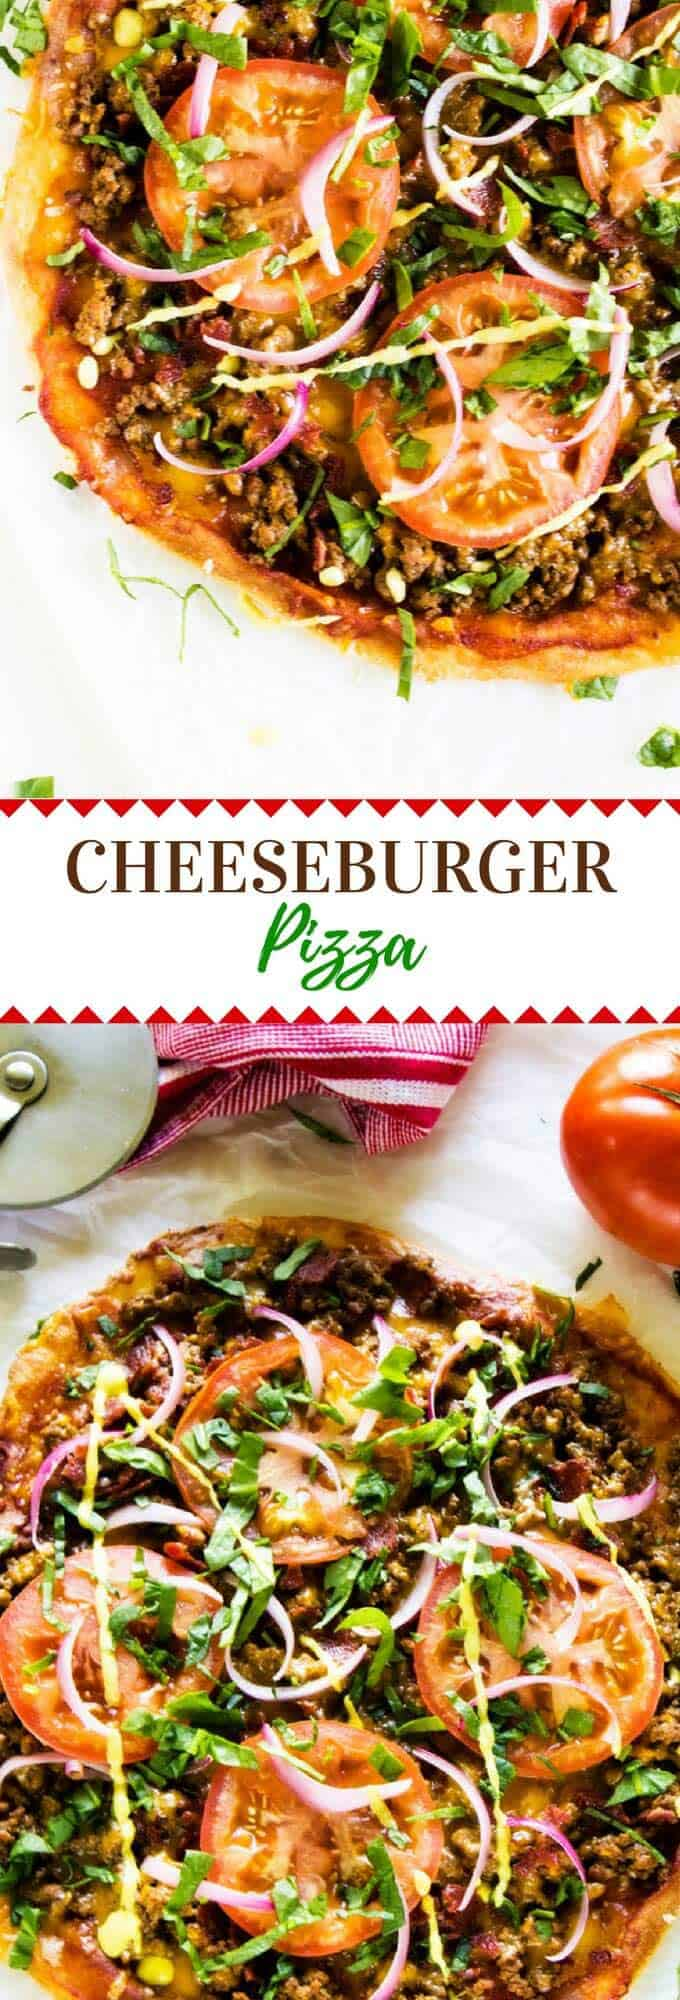 Mix up your pizza night with this Bacon Cheeseburger Pizza recipe.  It is the perfect blend of two favorites.  This pizza is one the whole family will love. Use Cauliflower Crust or Fathead Pizza Dough for a low carb or Keto option.